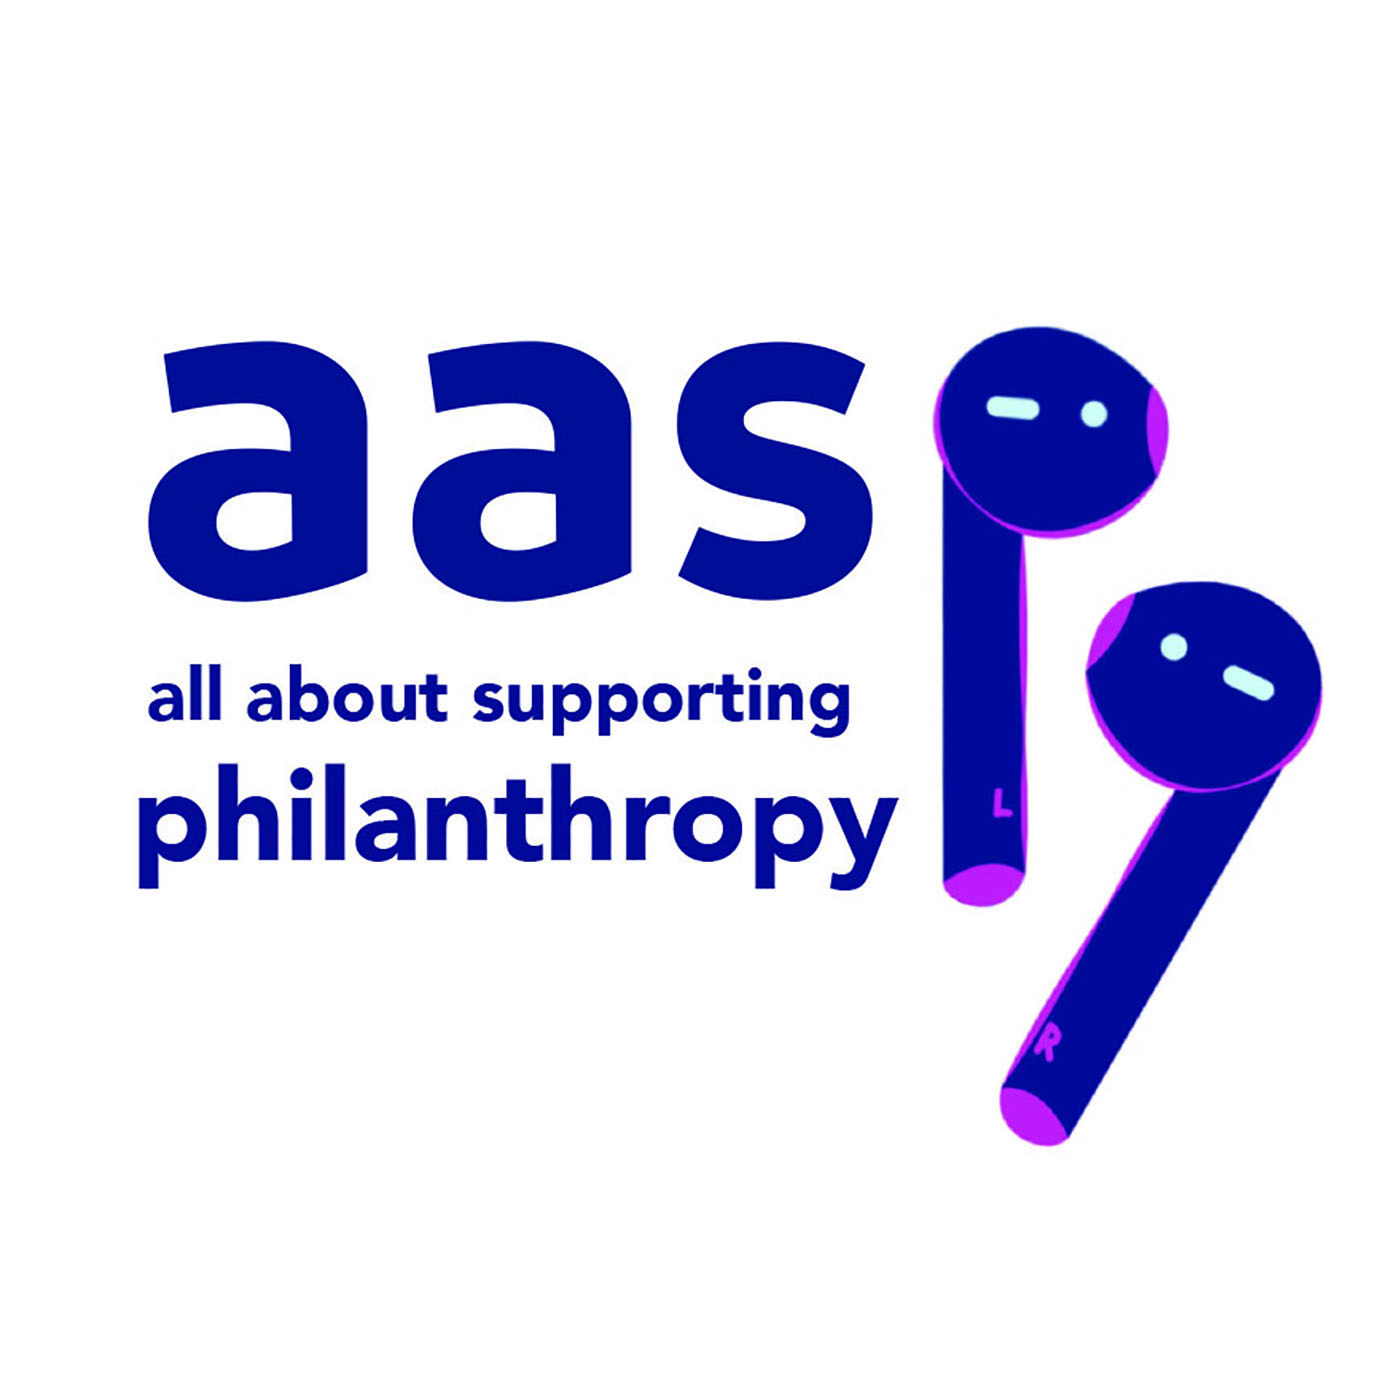 All About Supporting Philanthropy show image